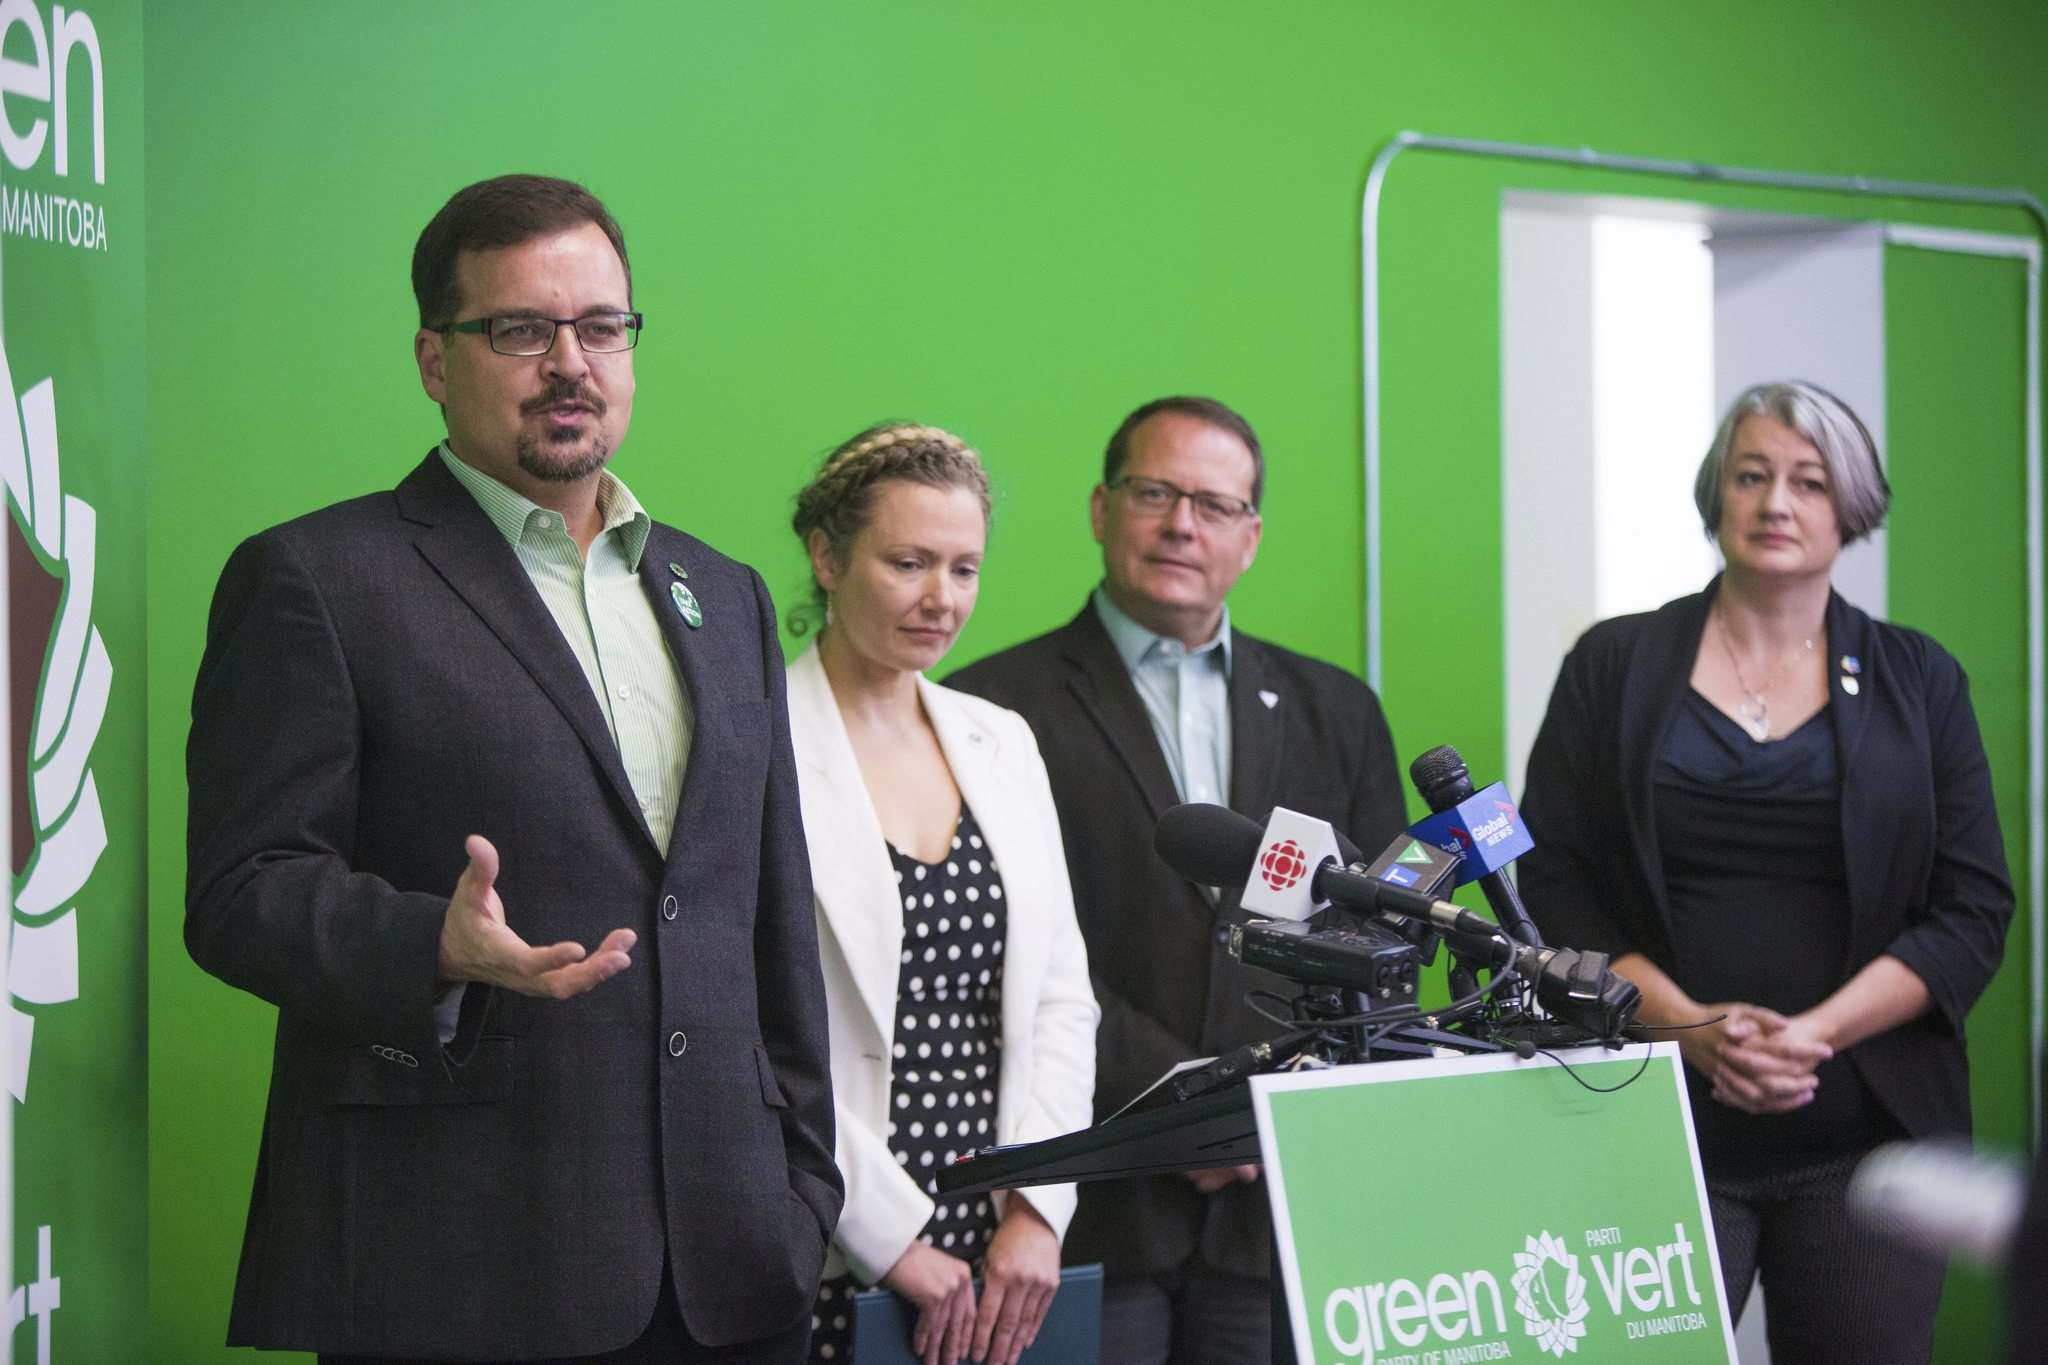 MIKAELA MACKENZIE / WINNIPEG FREE PRESS</p><p>Dave Nickarz discusses Green Party policy Saturday with Union Station candidate Andrea Shalay (second from left), Green Party of Ontario leader Mike Schreiner, and P.E.I. Green MLA Hannah Bell.</p></p>